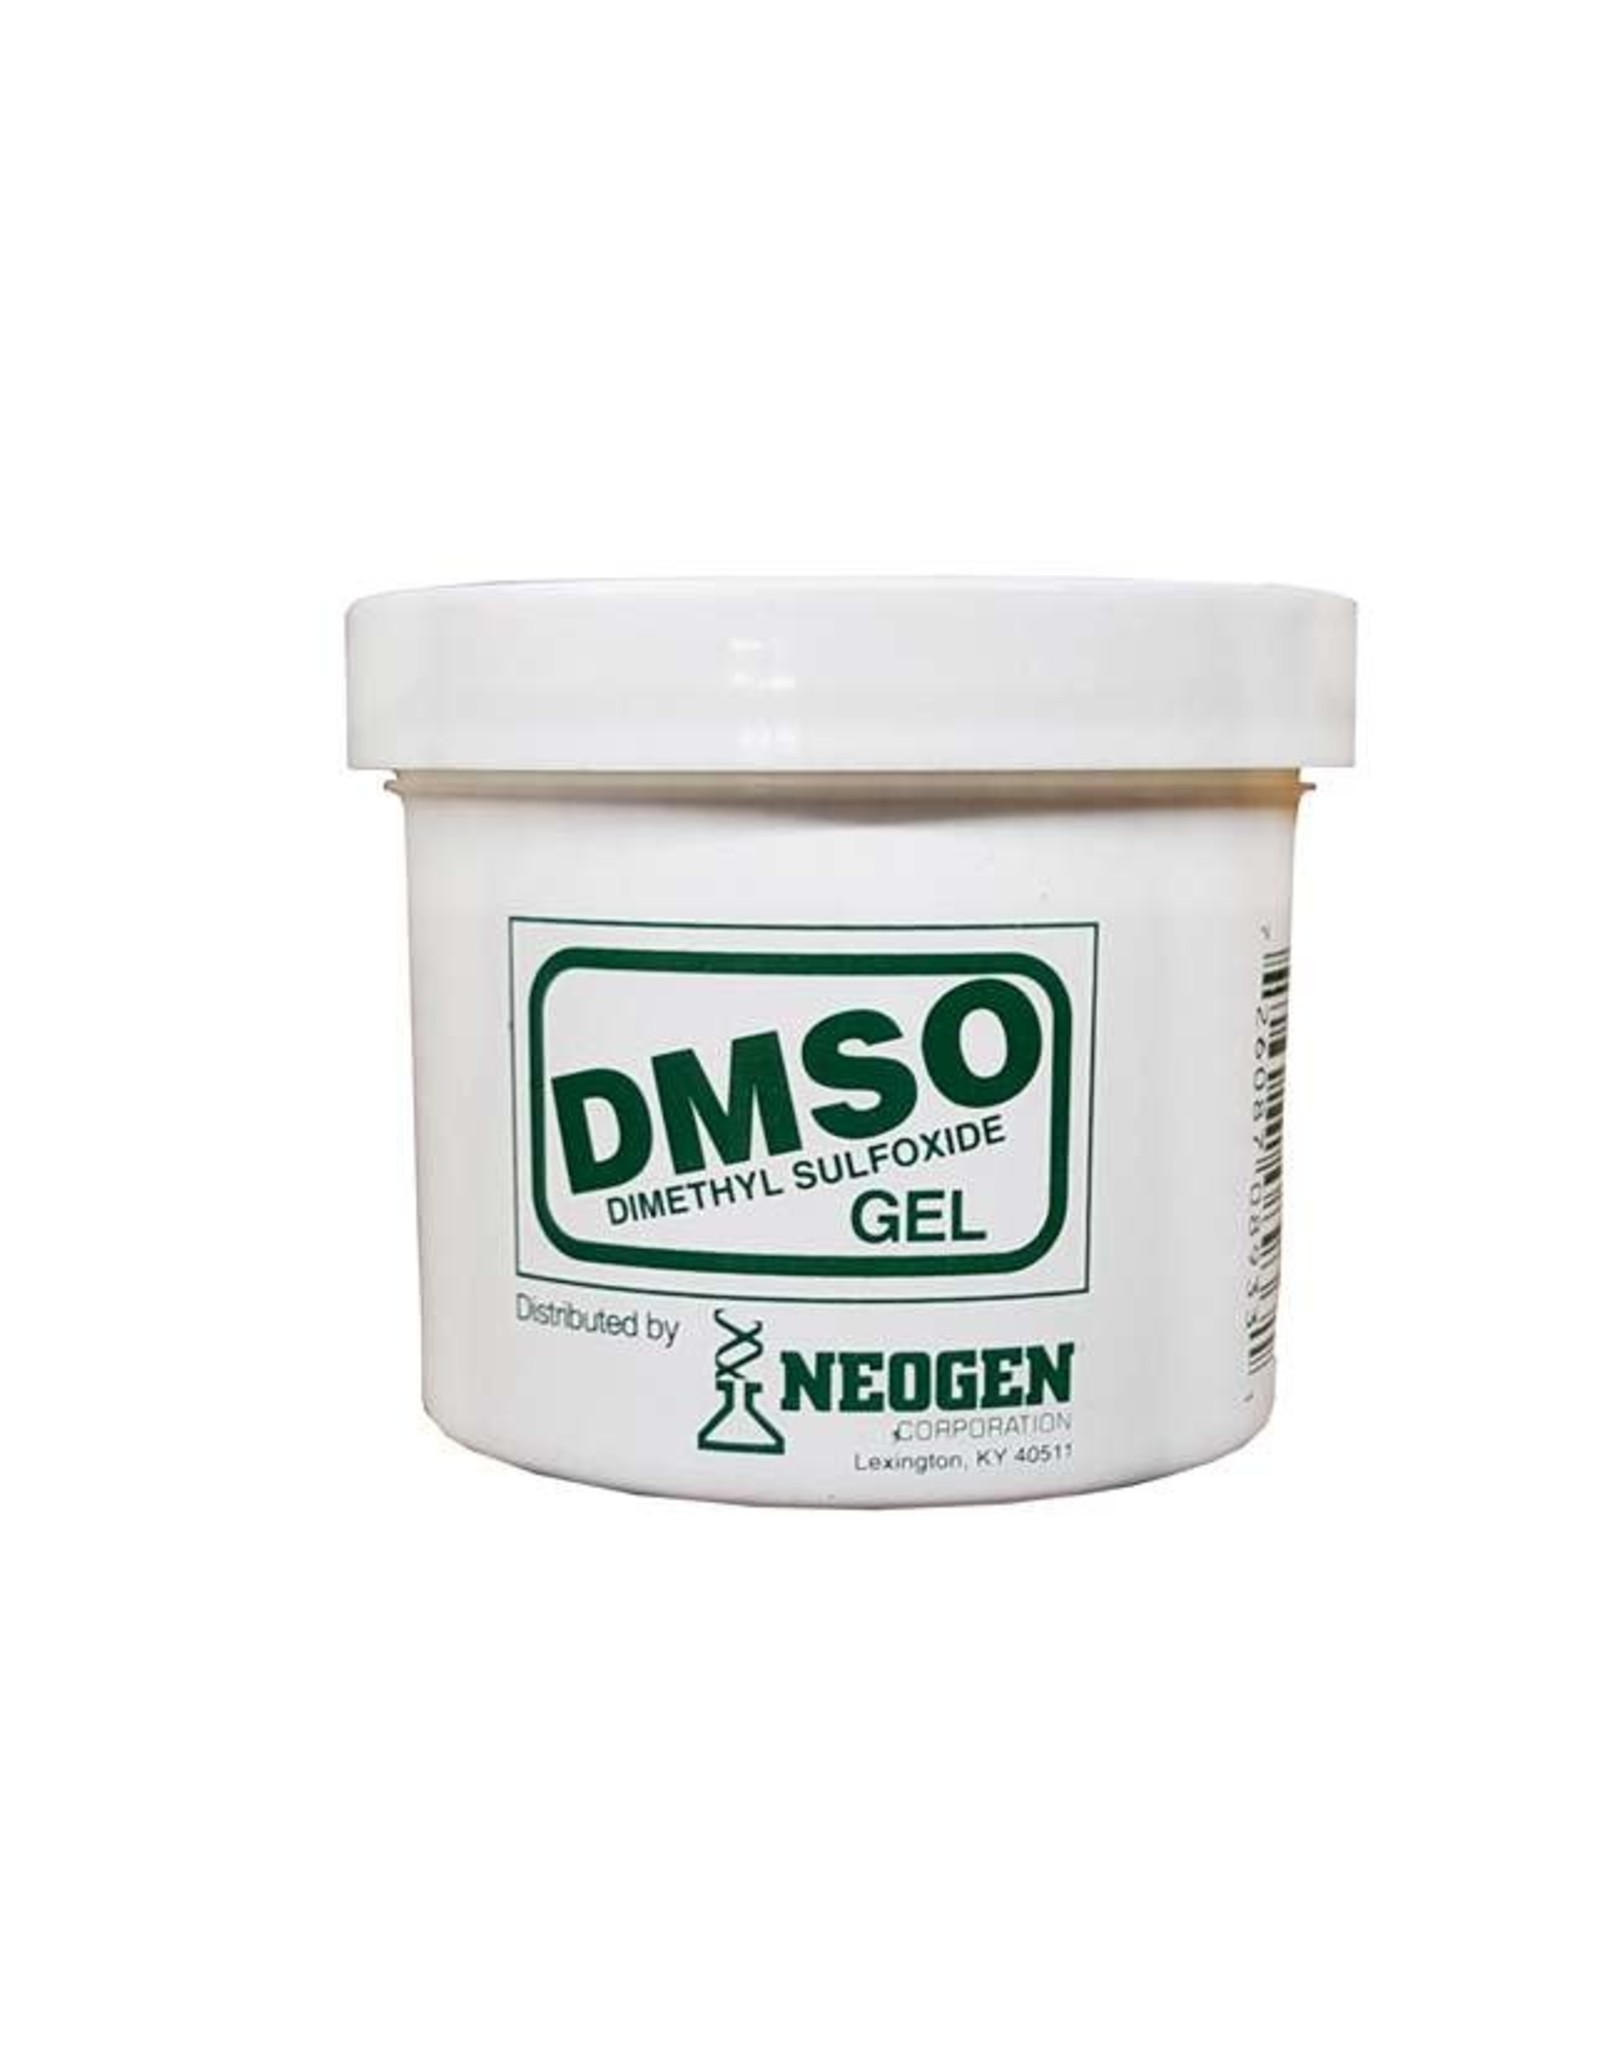 Neogen DMSO Gel 90% 4oz